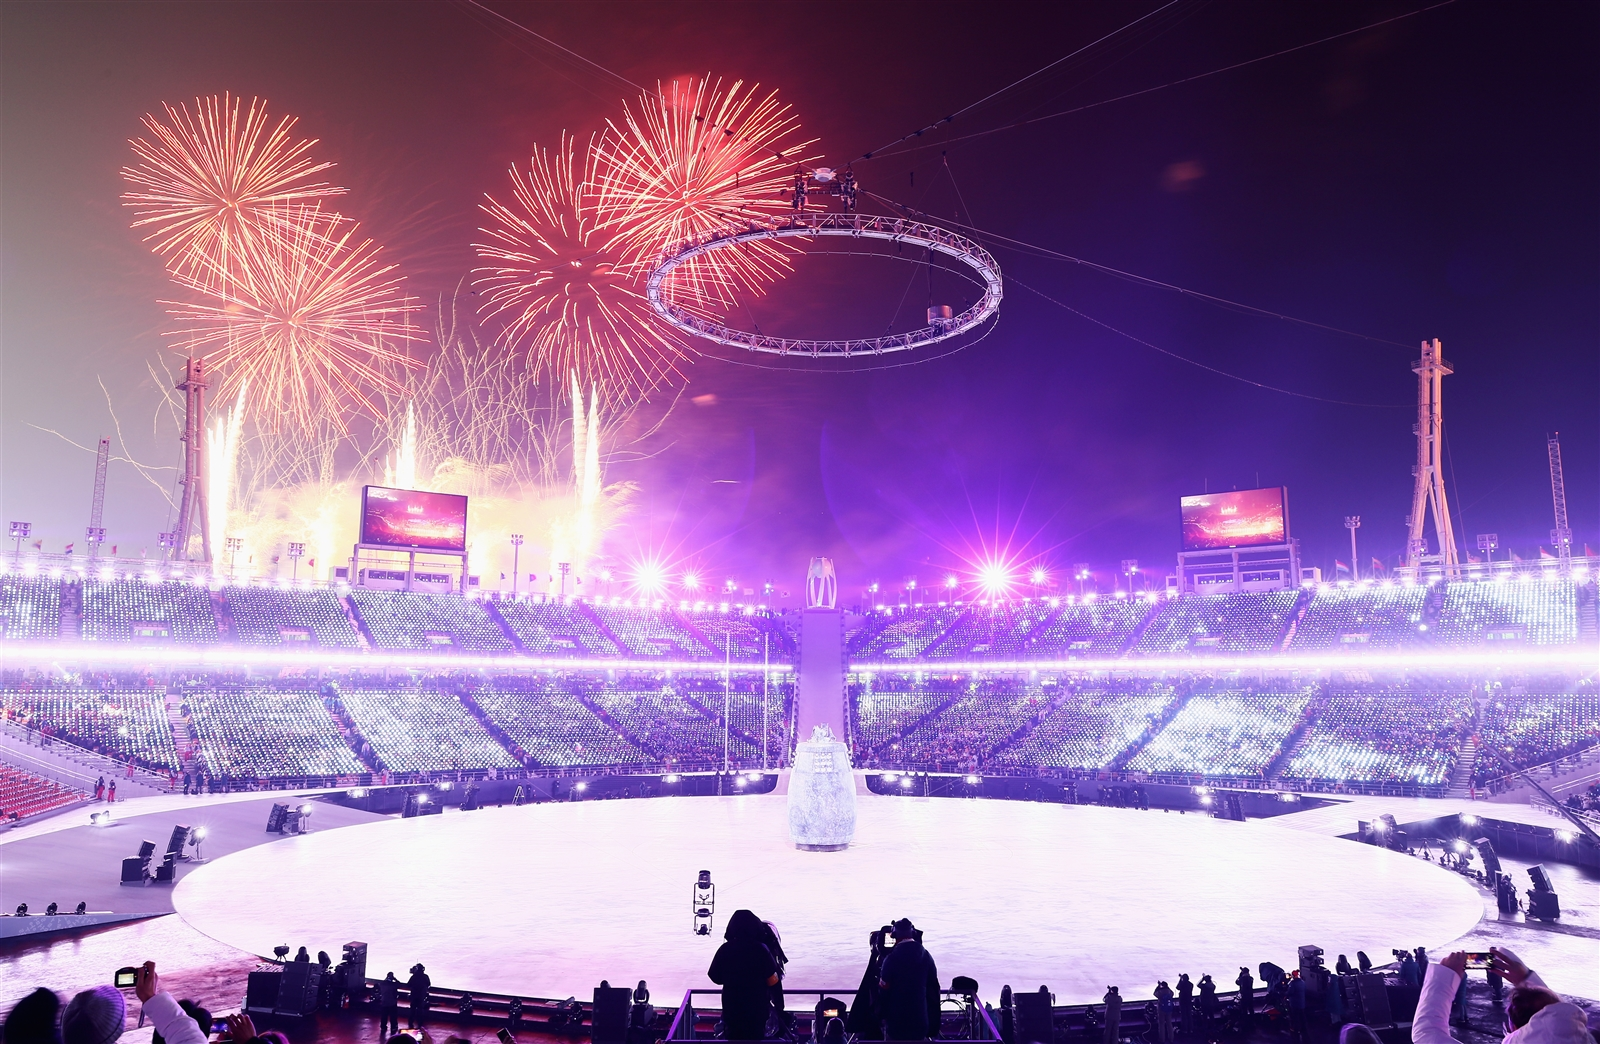 Fireworks explode during the Opening Ceremony of the Pyeongchang 2018 Winter Olympic Games at PyeongChang Olympic Stadium on Feb. 9, 2018, in Pyeongchang, South Korea.